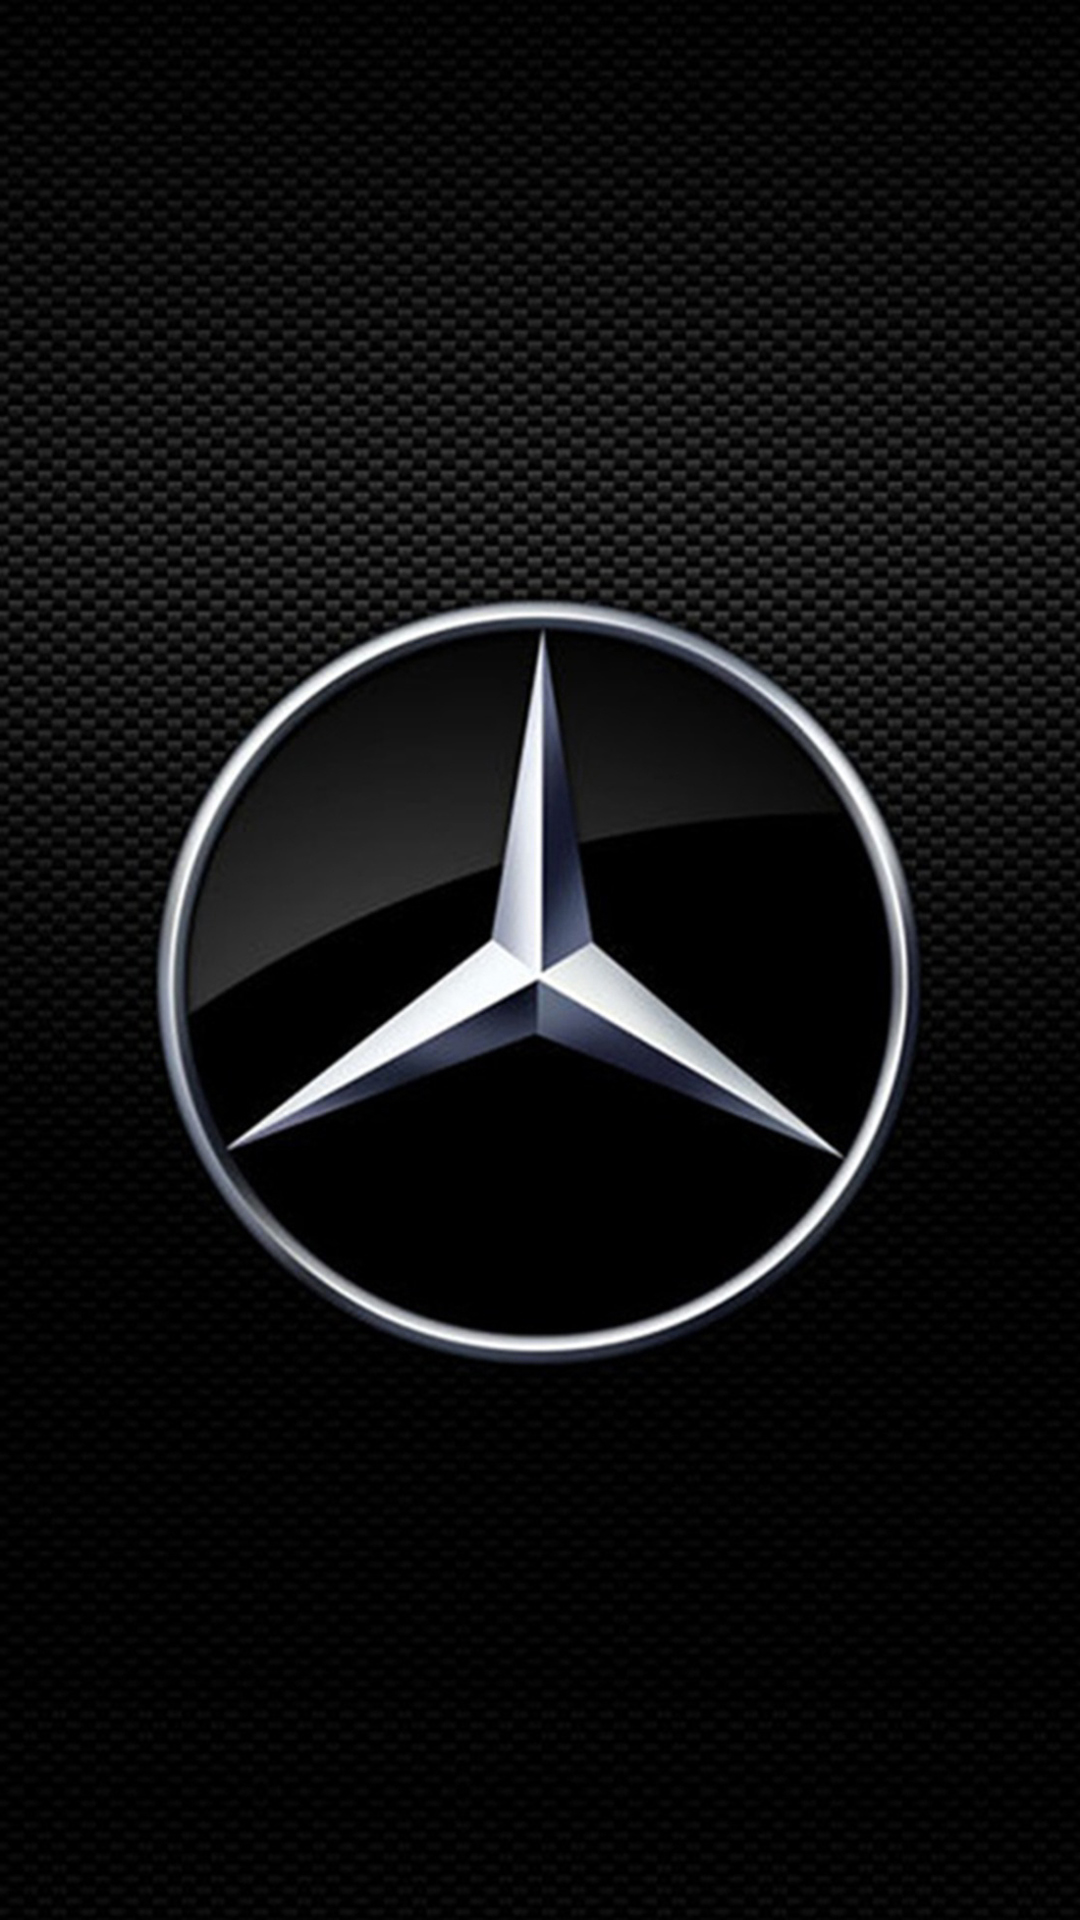 subaru logo wallpaper android. mercedesbenz symbol subaru logo wallpaper android